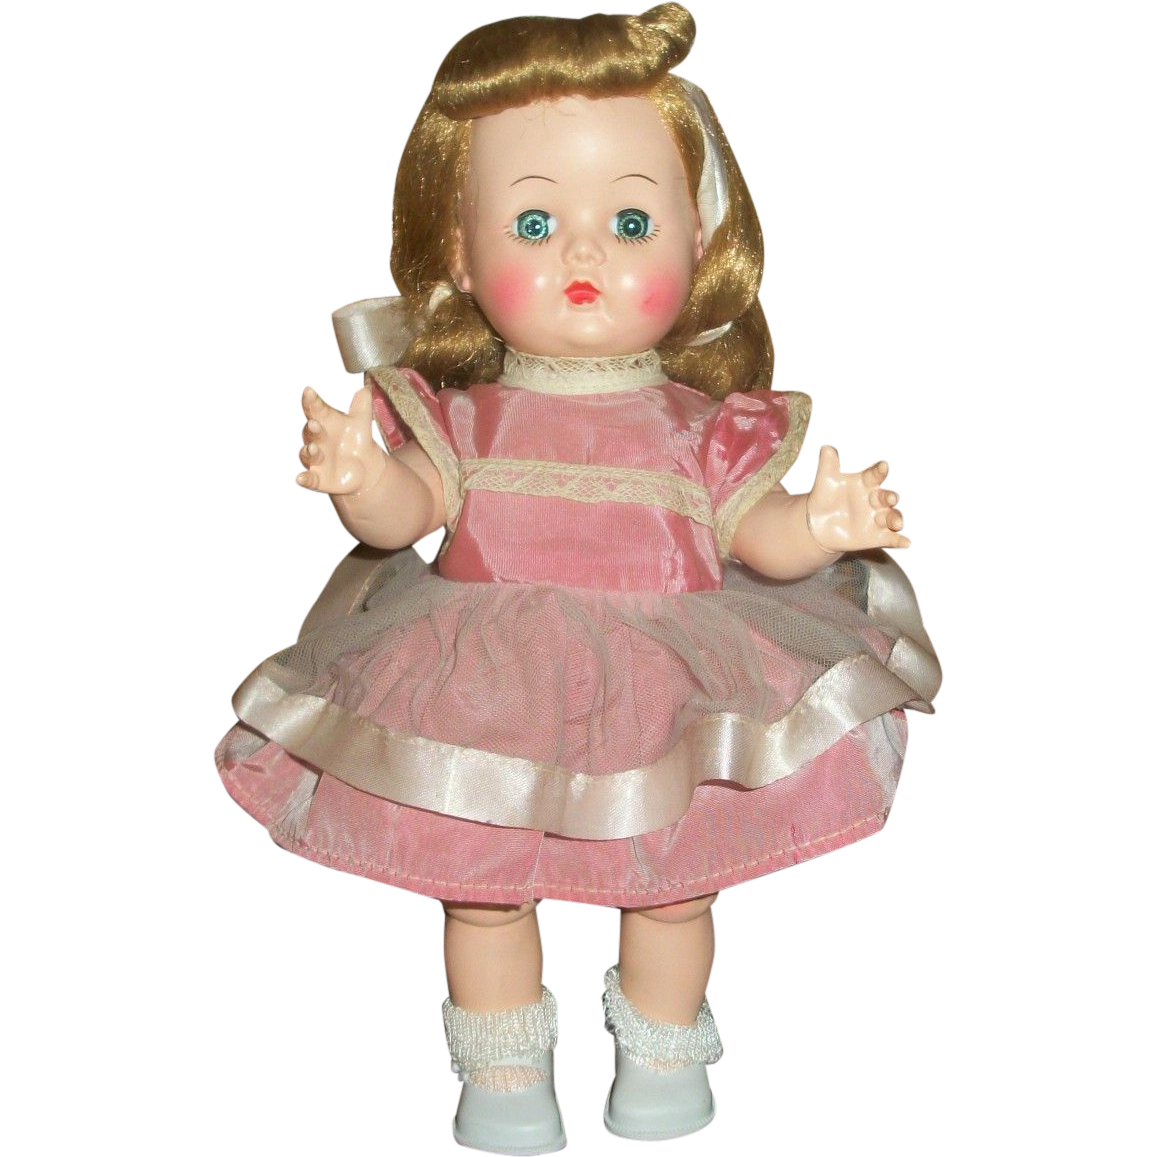 """Gorgeous 10.5"""" HP Chubby Toddler BKW All Original With Great Hair!"""